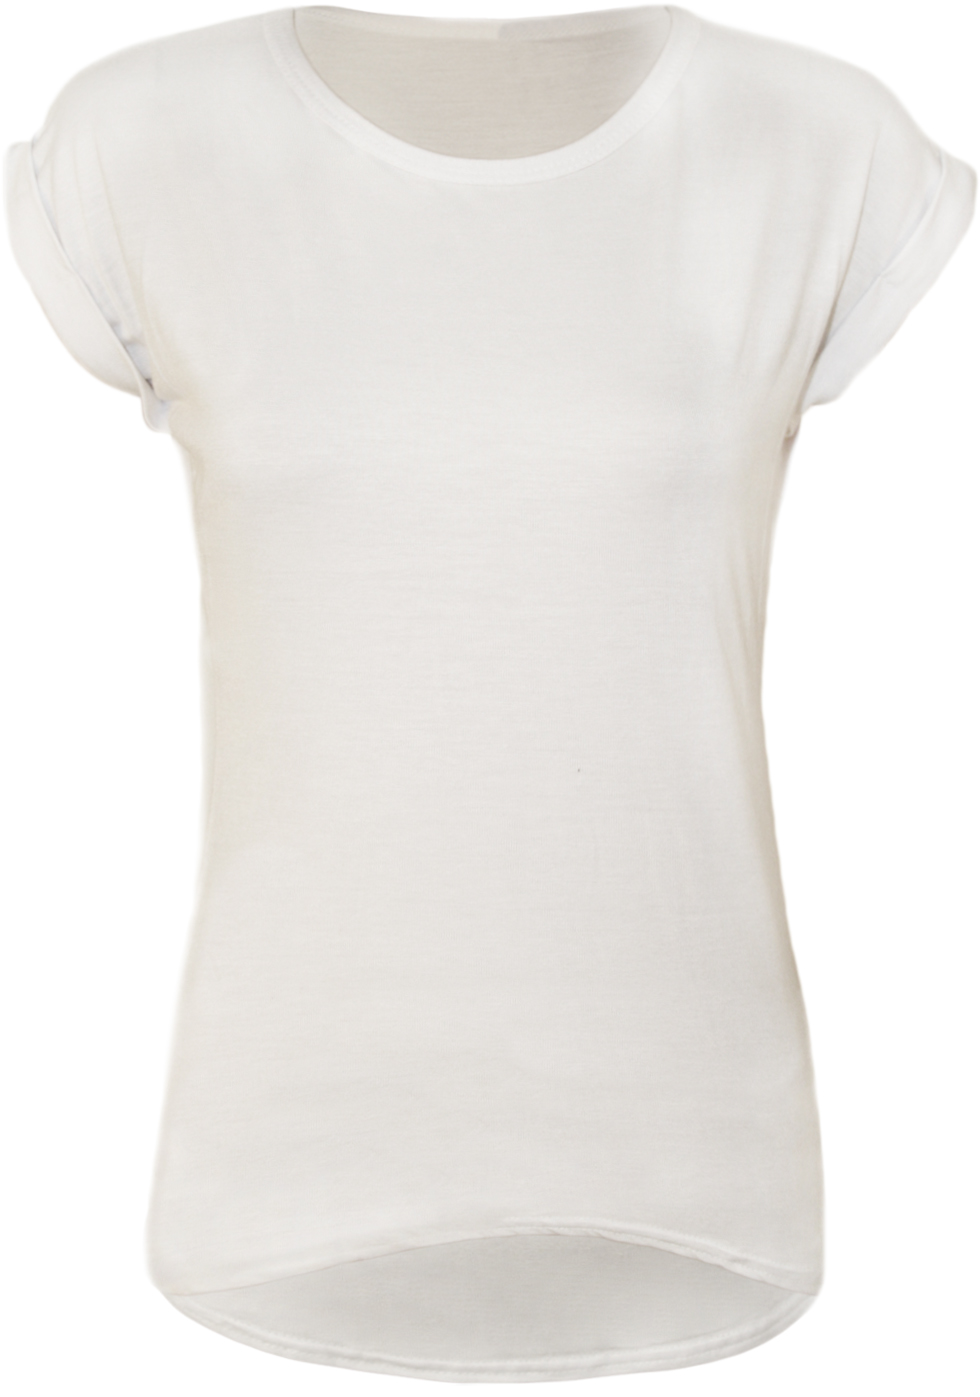 Plain white shirts for women